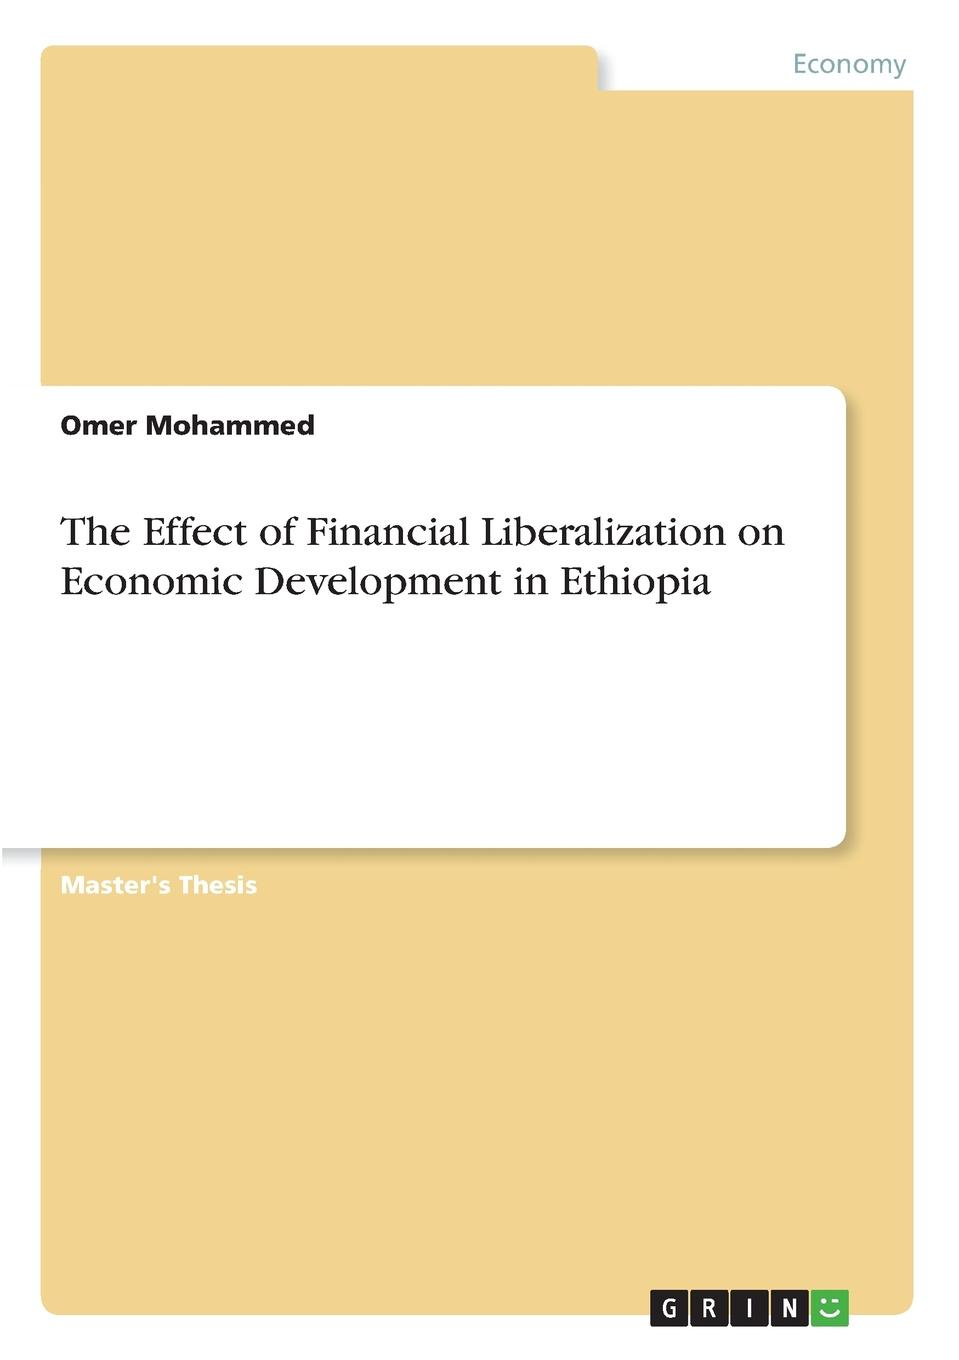 Omer Mohammed The Effect of Financial Liberalization on Economic Development in Ethiopia fotios pasiouras efficiency and productivity growth modelling in the financial services industry